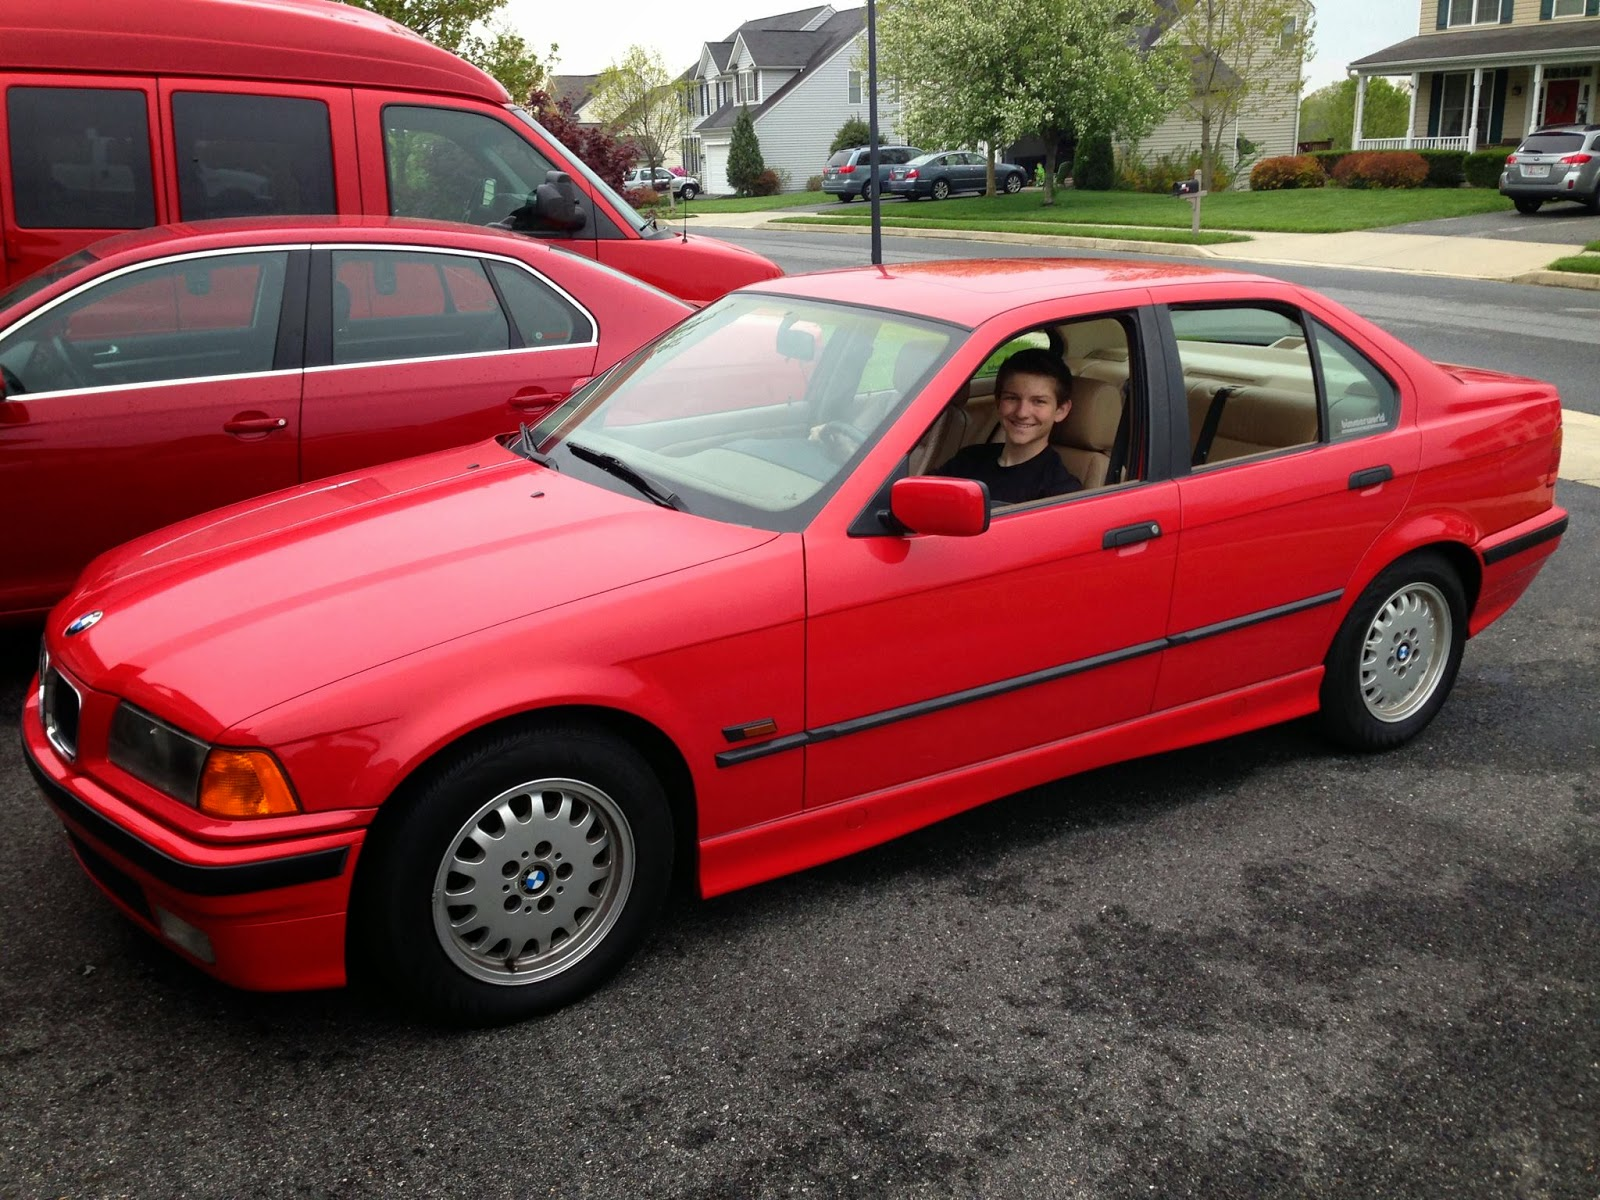 The Student Driver: E36 BMWs: Why They Are the Best Things Your Lack